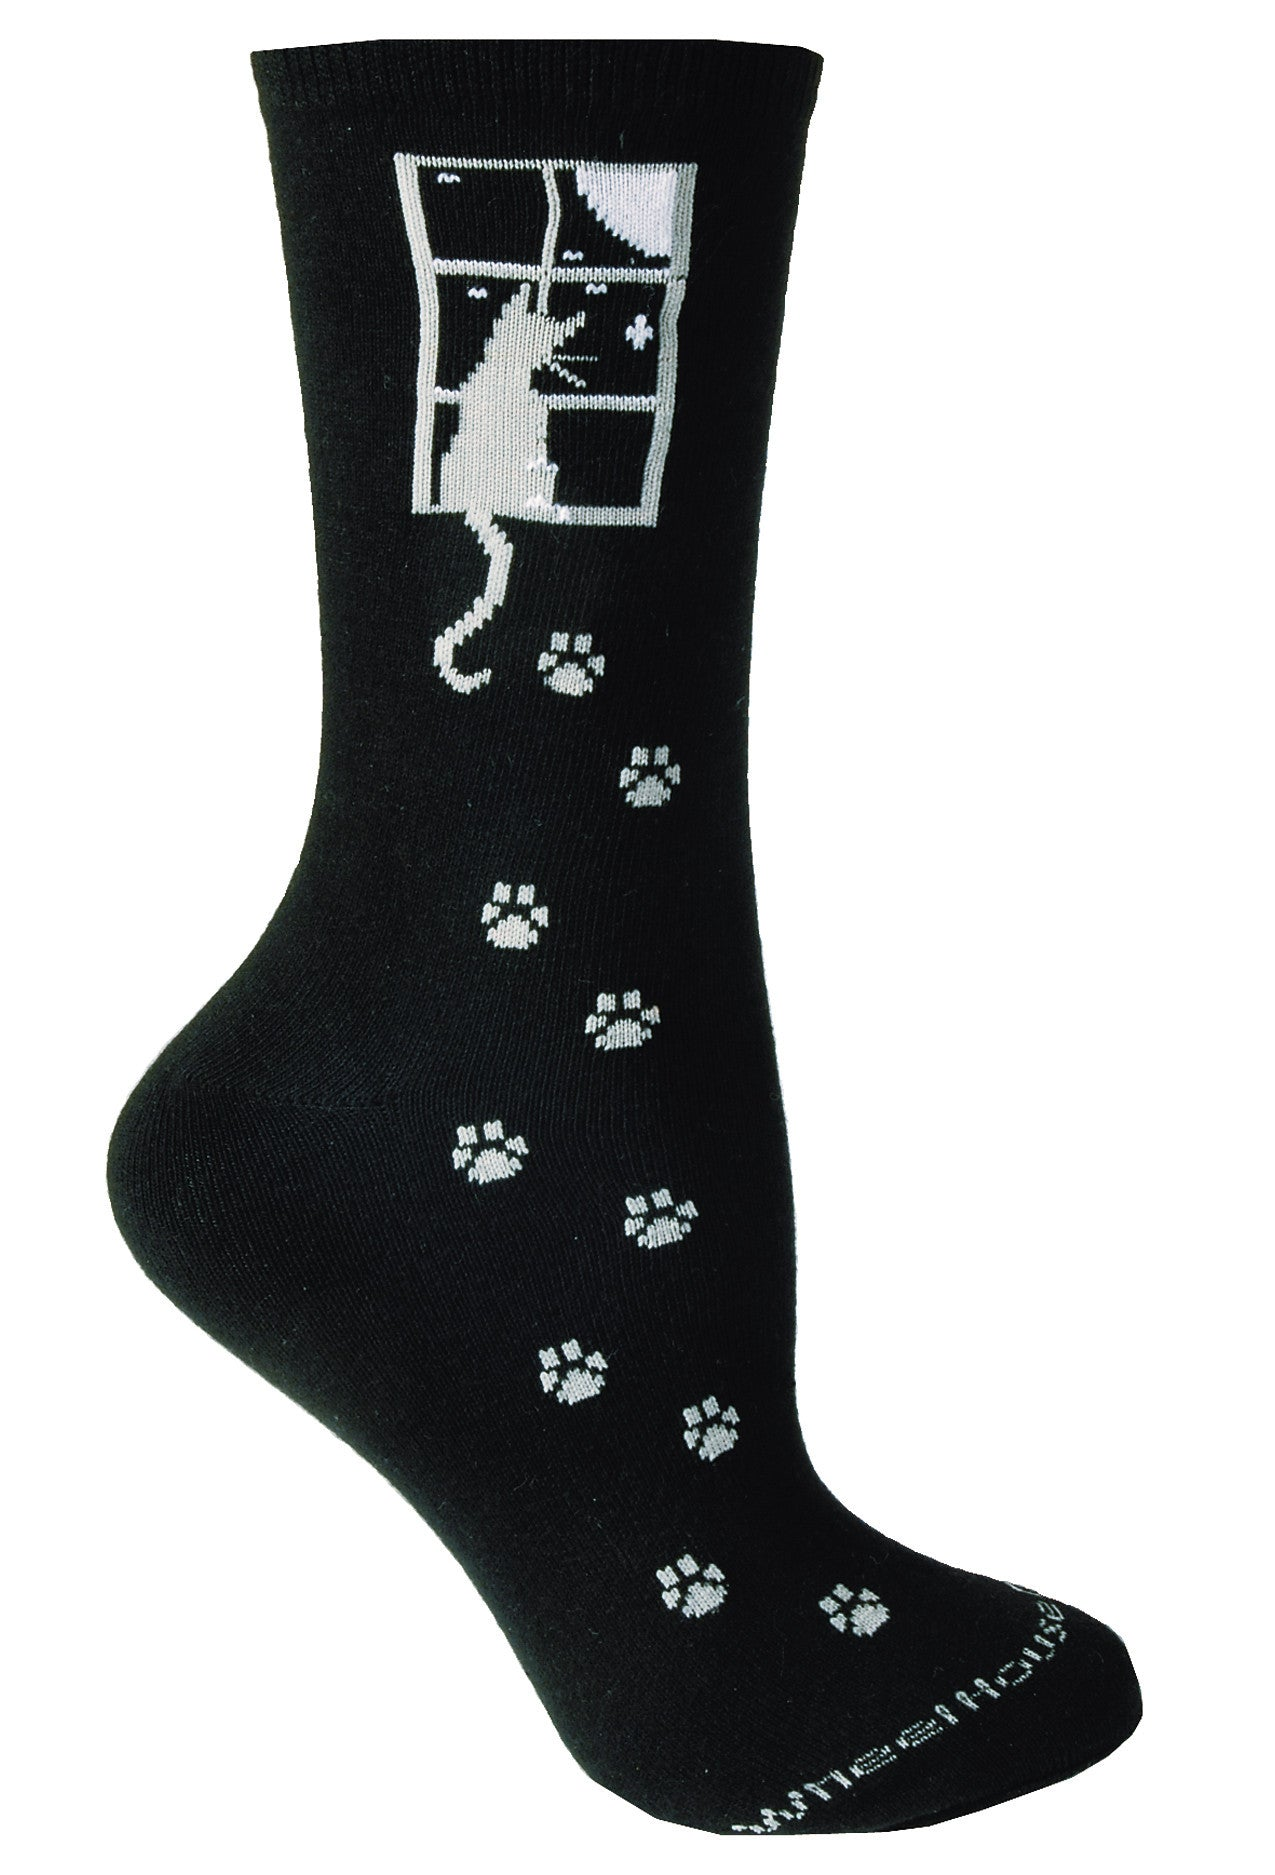 Cat Window, Gray Cat on Black Crew Socks